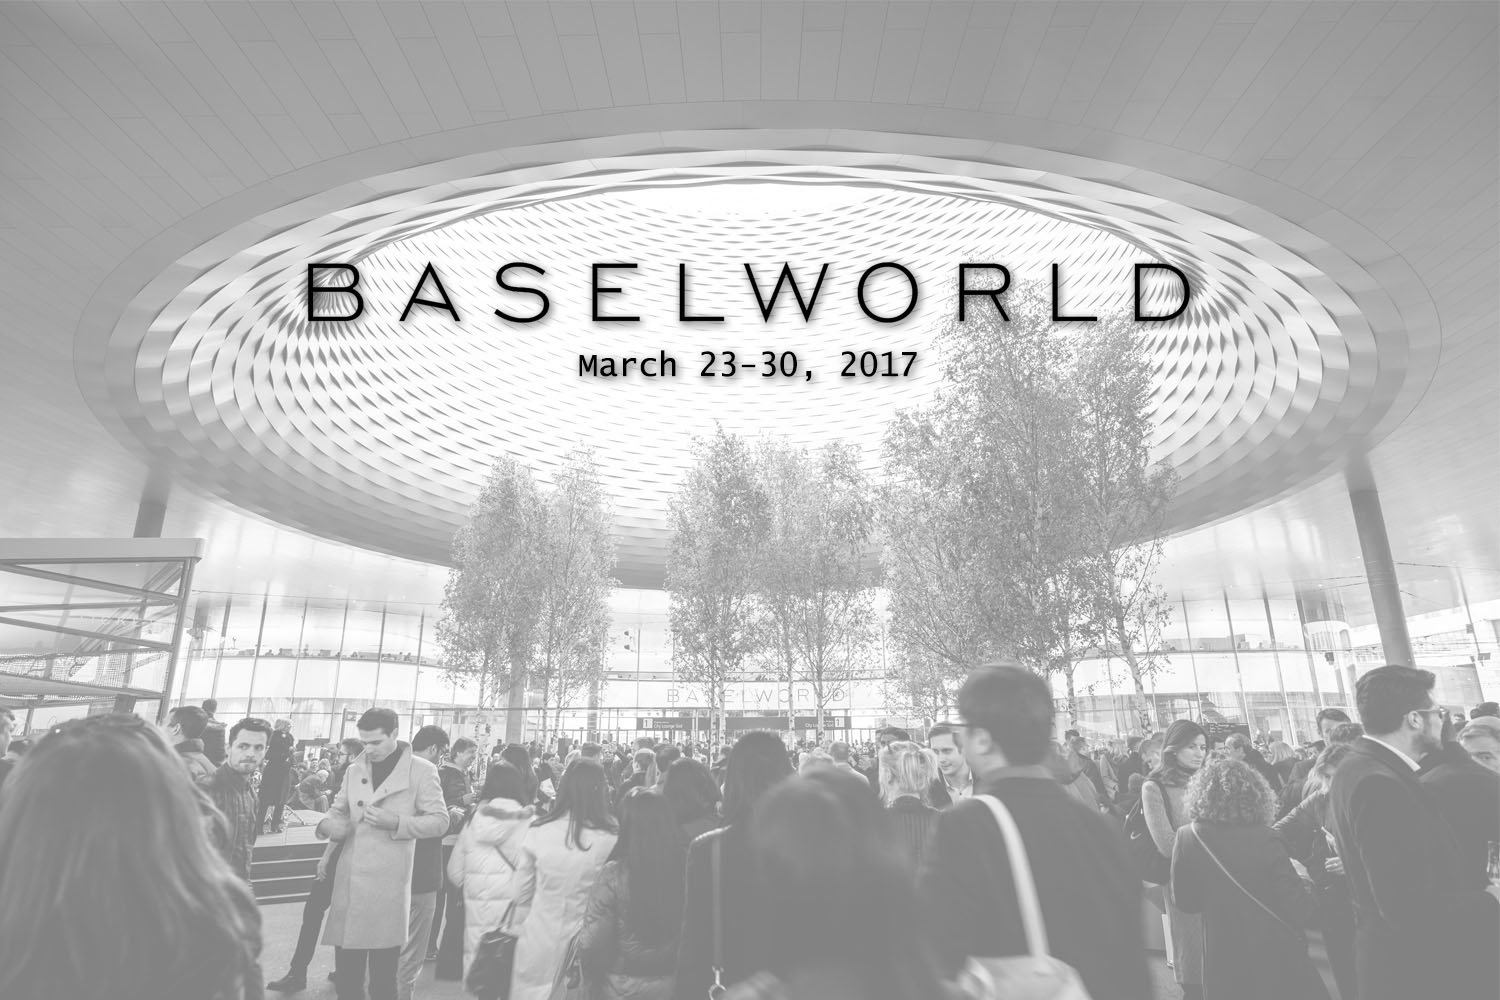 What to expect Baselworld 2017